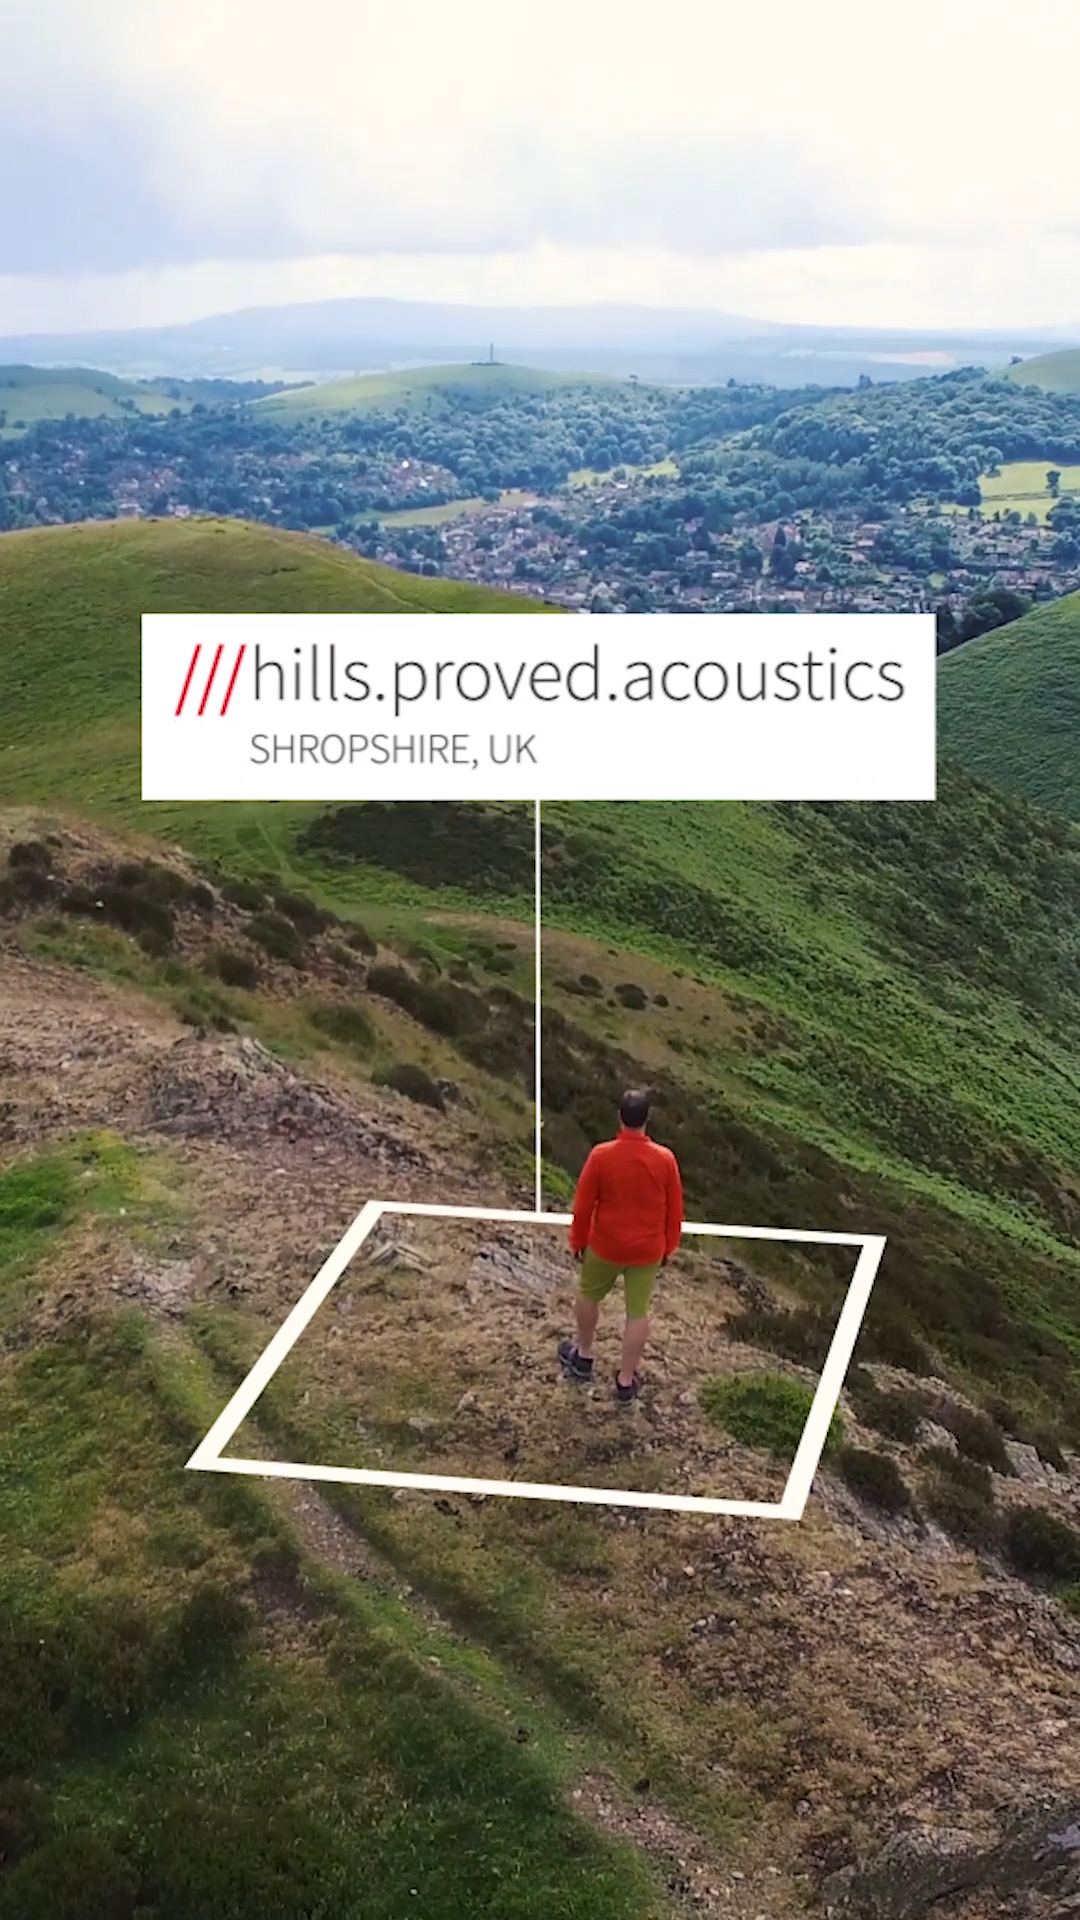 man hiking in a hilly landscape at 3 word address hills.proved.acoustics